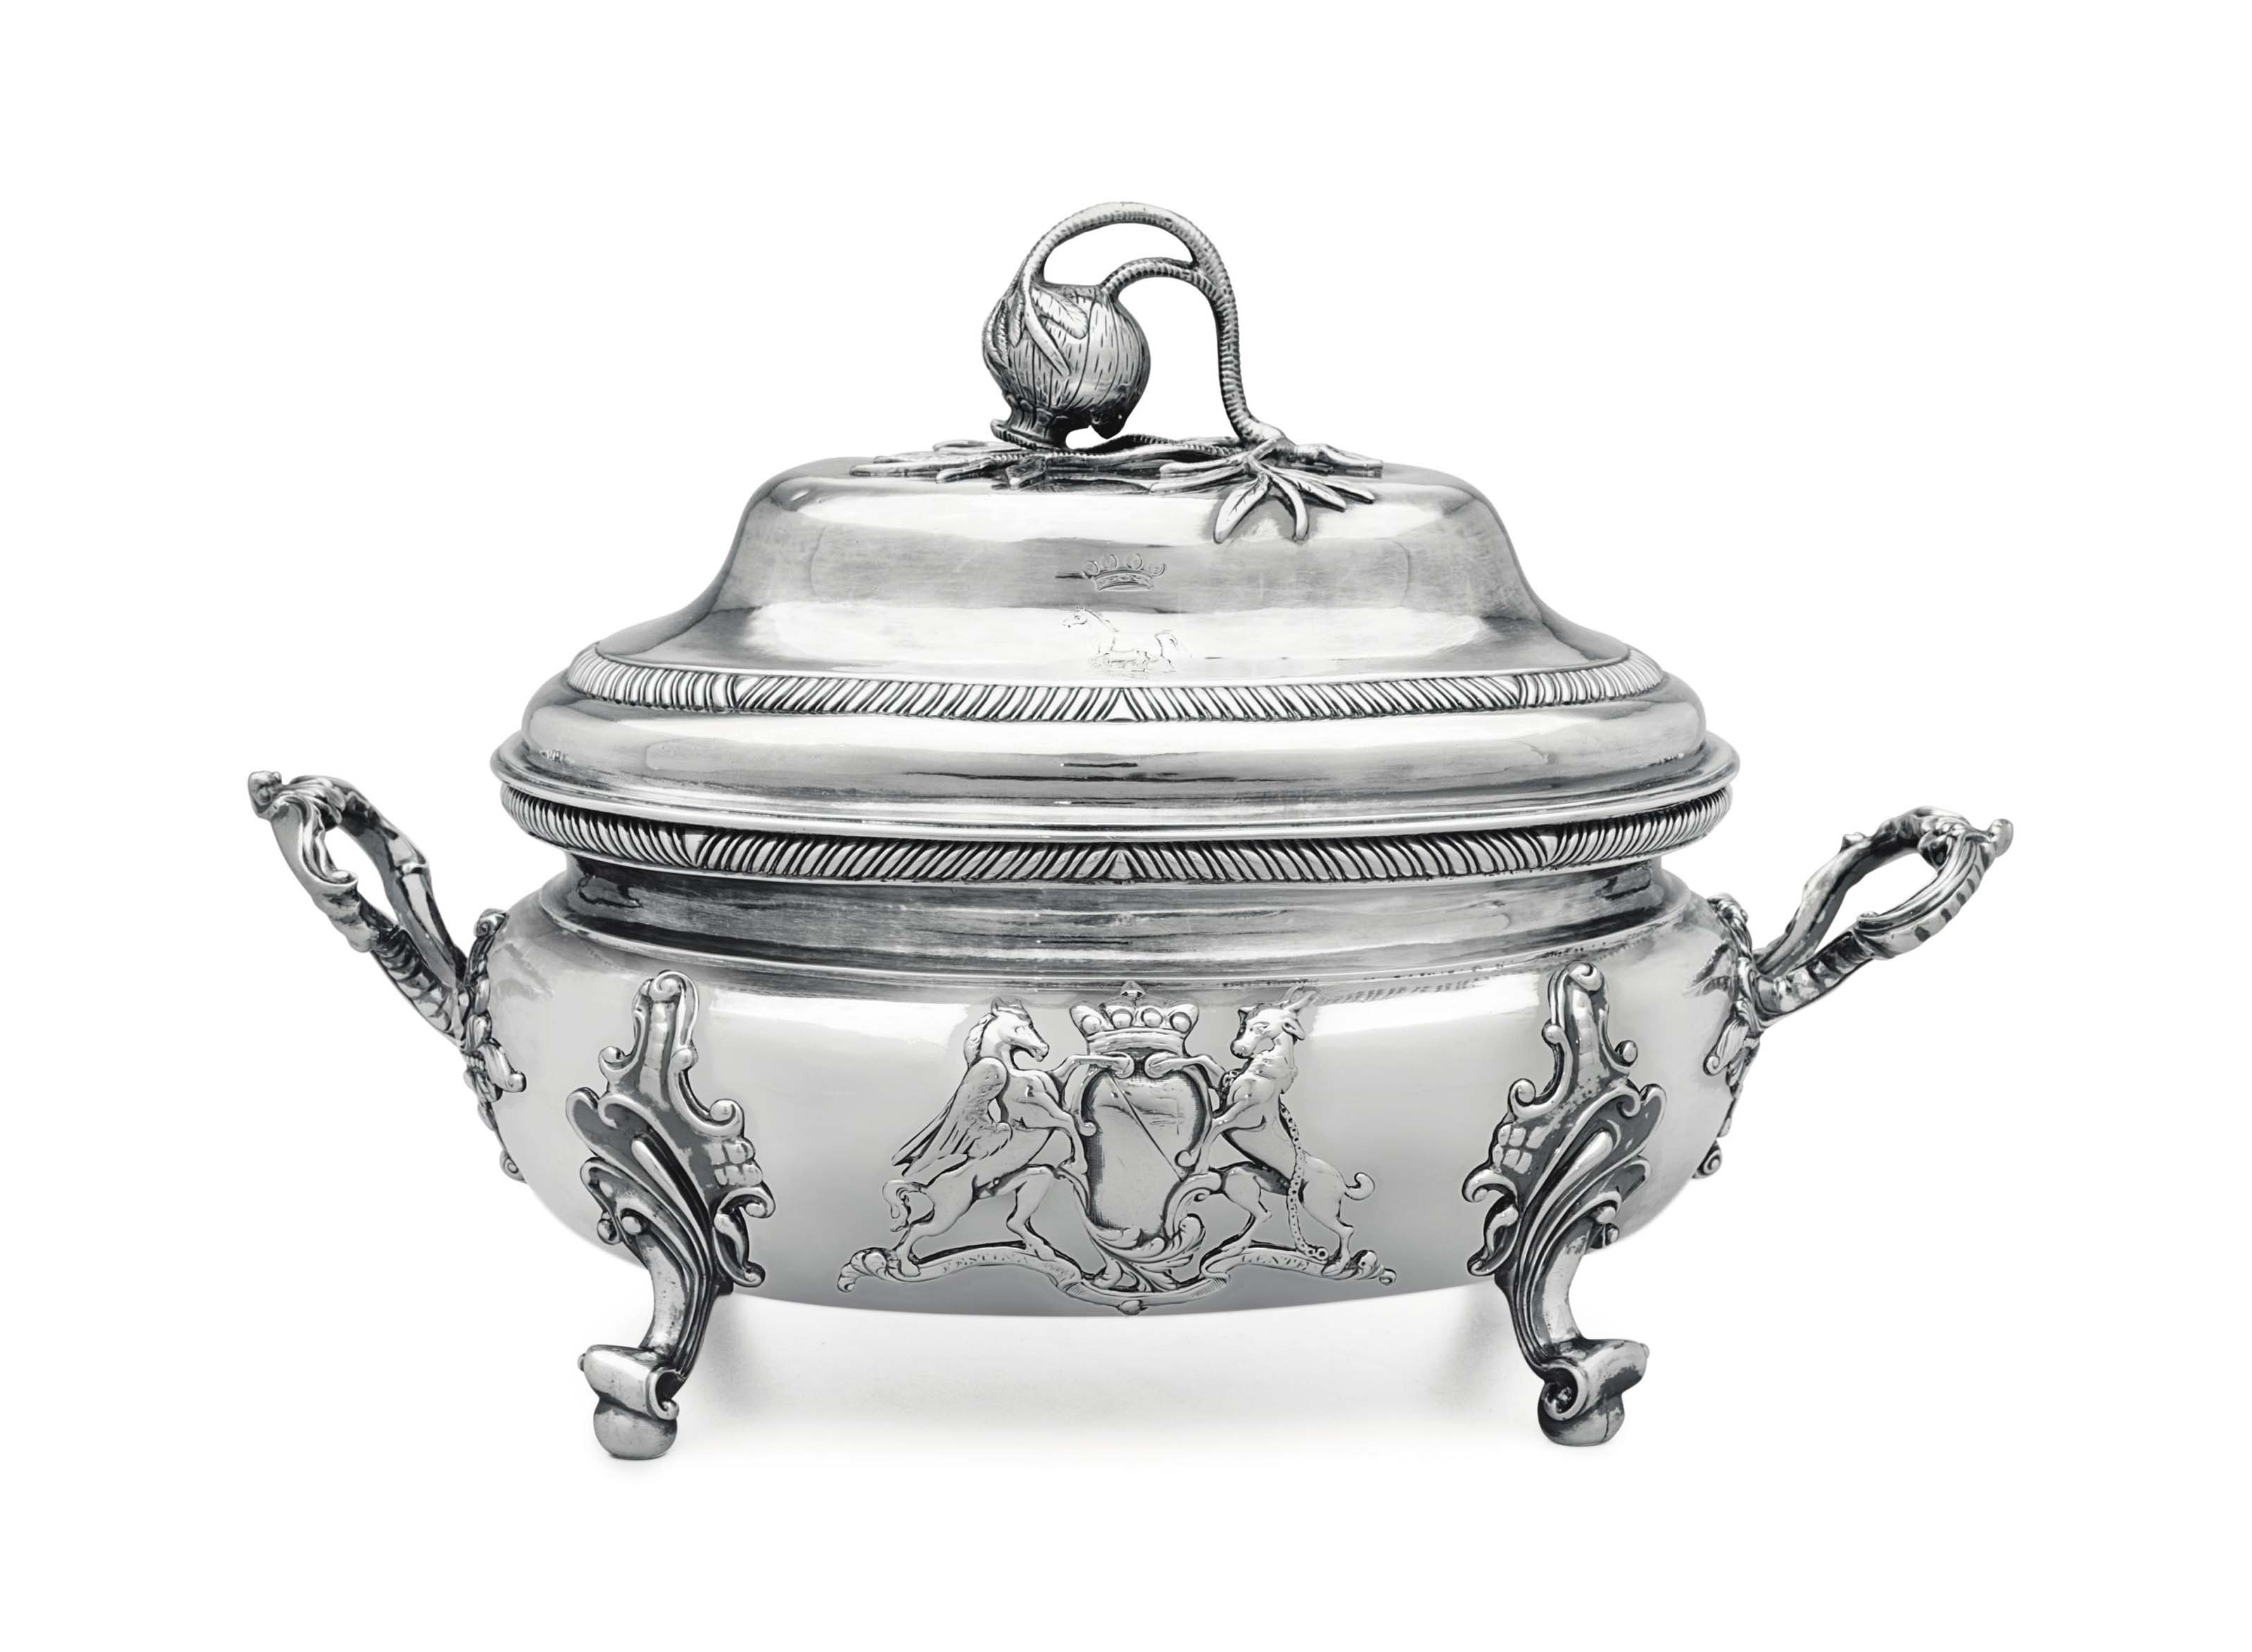 A GEORGE III IRISH SILVER SOUP TUREEN